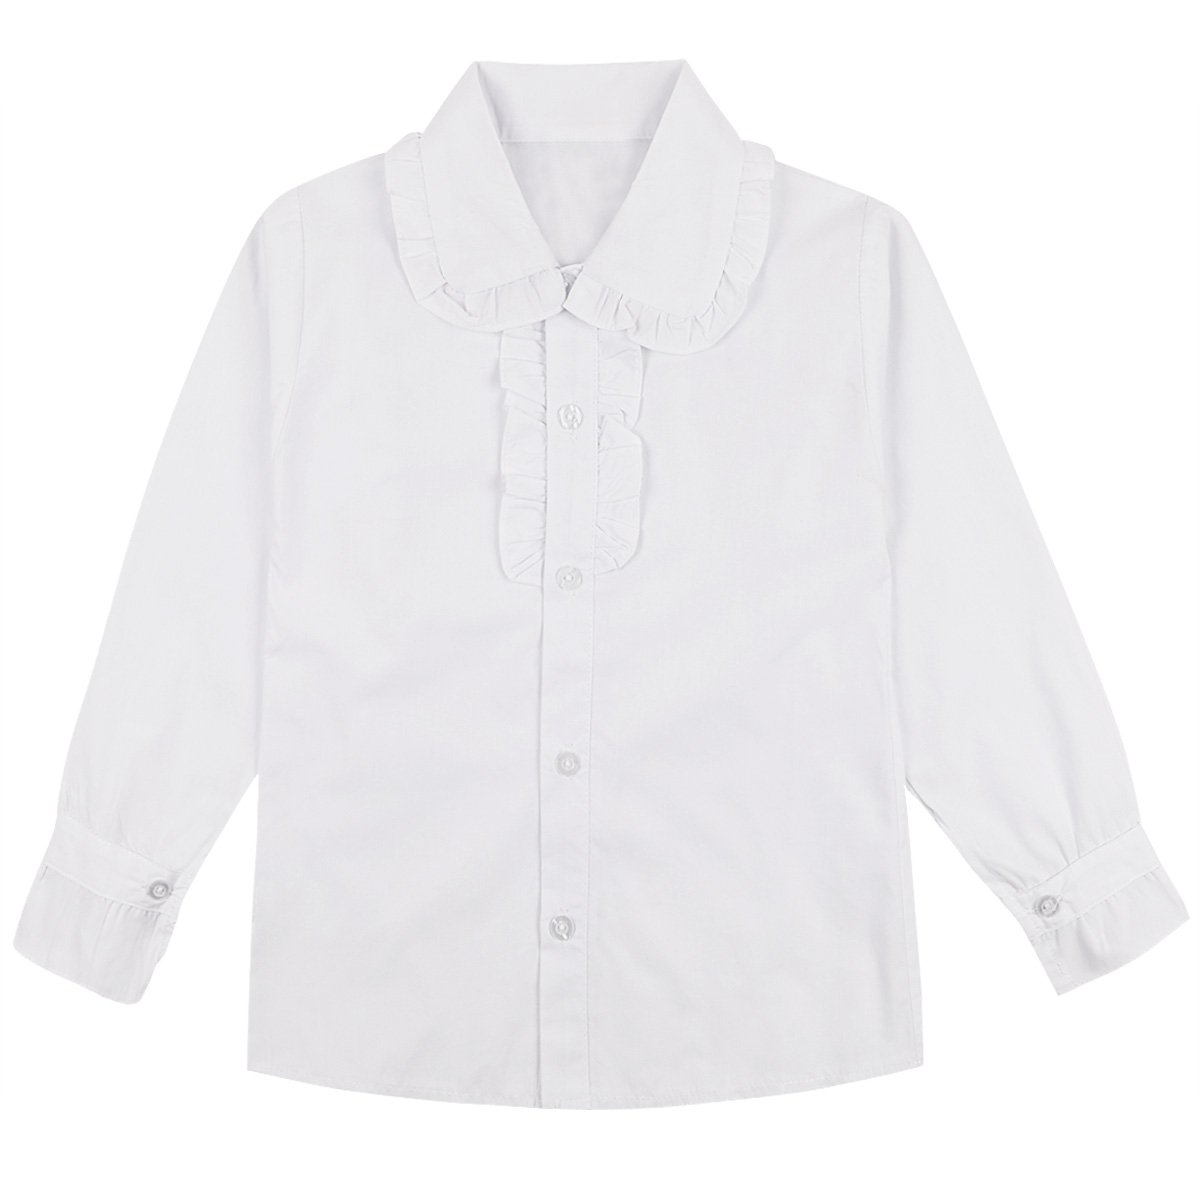 Alvivi Big Girl's School Uniforms Oxford Long Sleeve Spread Collar Blouse Button up Shirt White 7-8